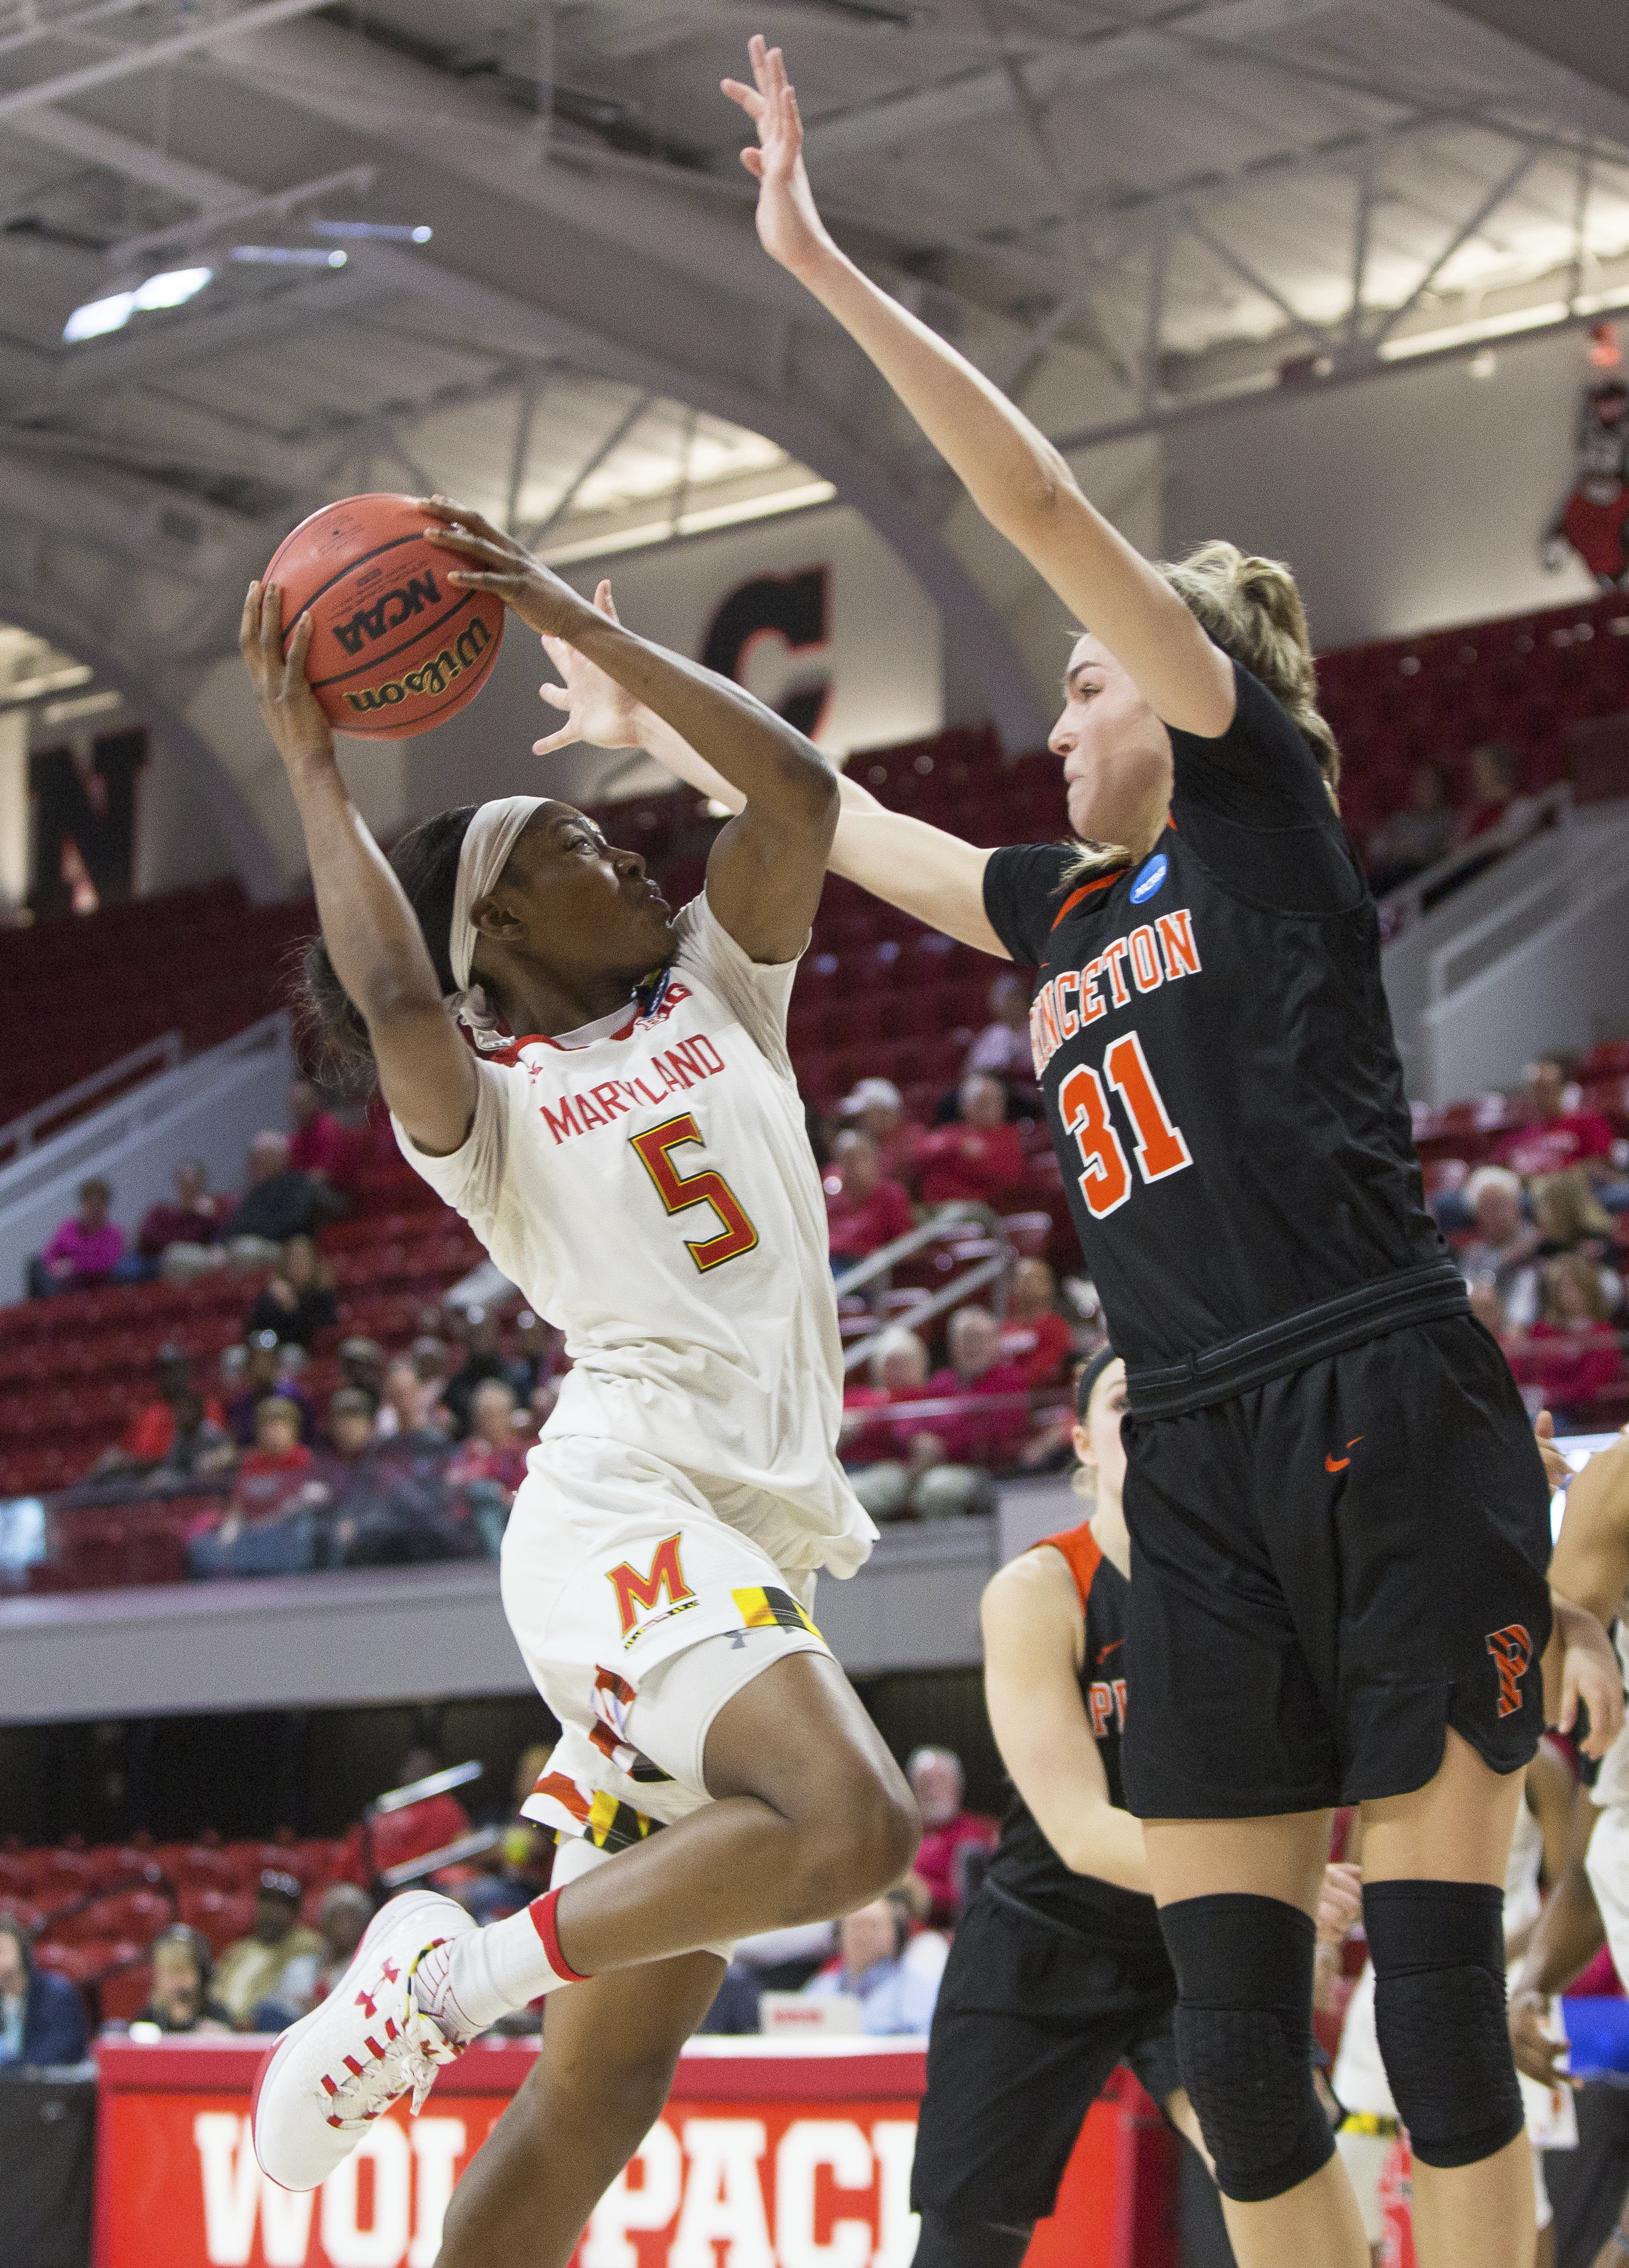 Maryland's Kaila Charles (5) attempts a shot against Princeton's Bella Alarie (31) during the first half of a first-round game in the NCAA women's college basketball tournament in Raleigh, N.C., Friday, March 16, 2018. (AP Photo/Ben McKeown)